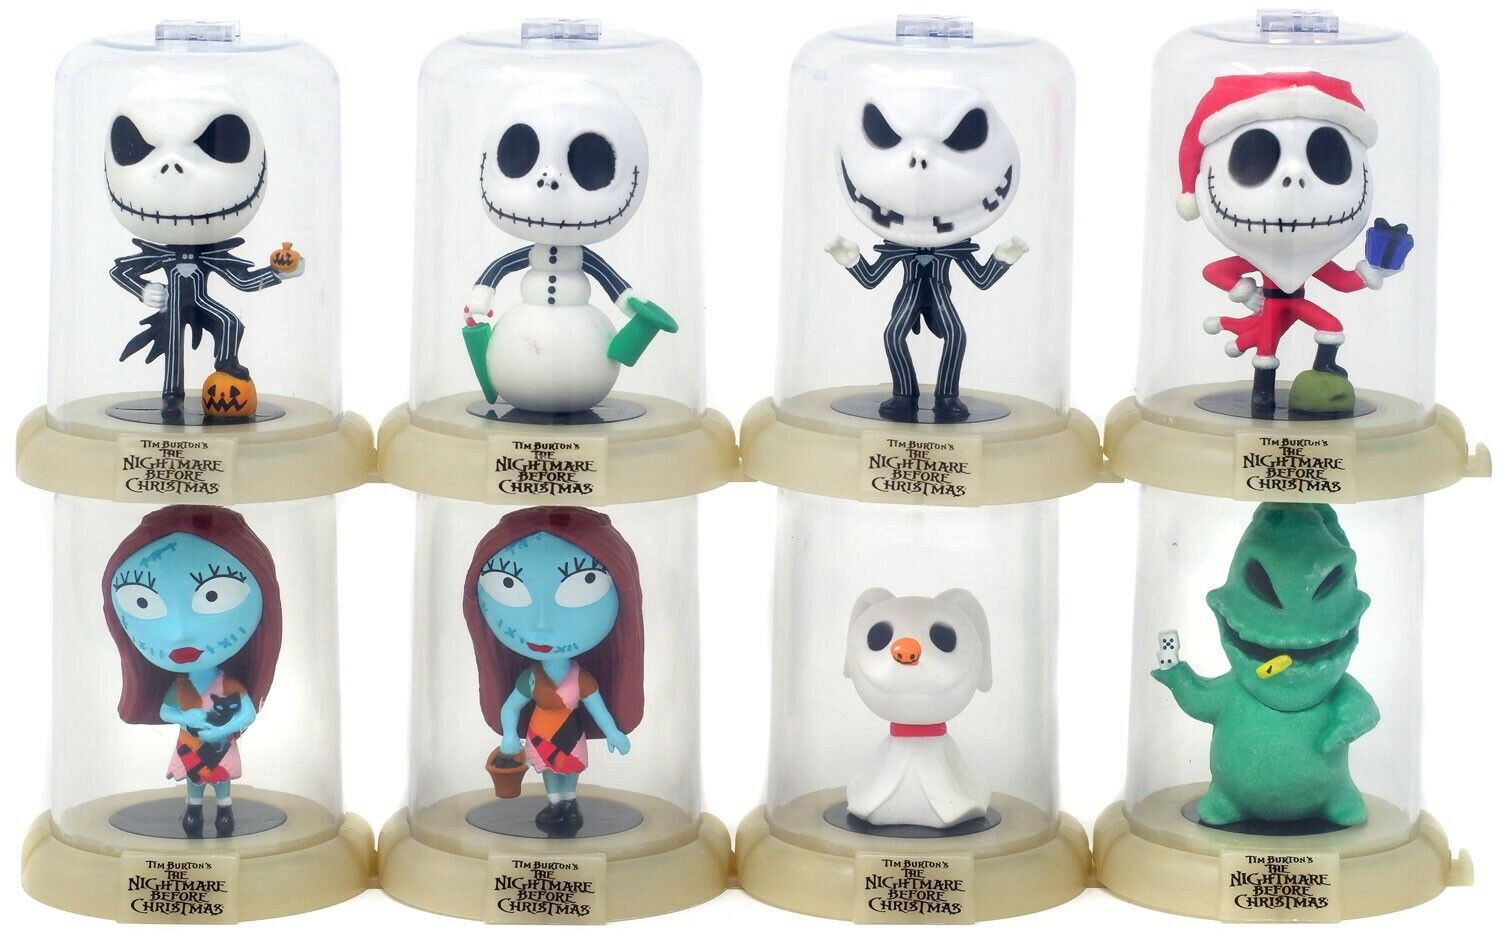 Domez Series 1 Nightmare Before Christmas Set of 8 Figures